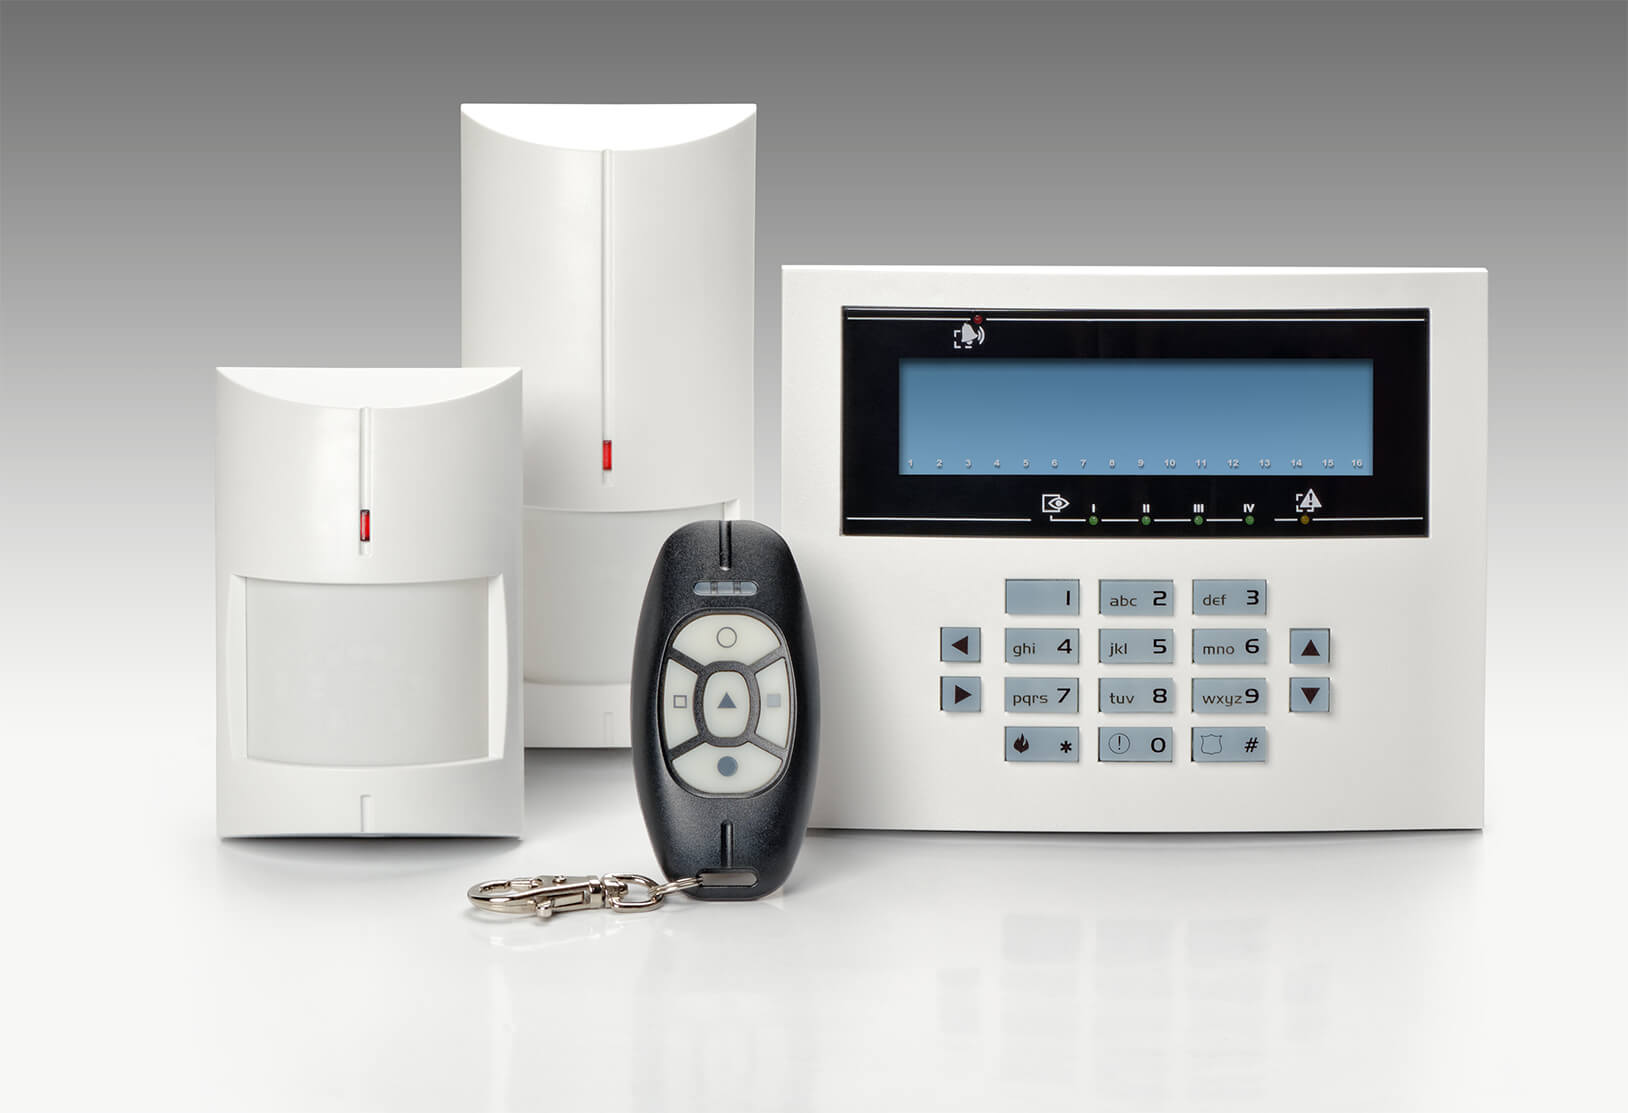 home NACOSS Approved {alarms} In Battersea SW17 - Local Battersea SW17 security company.Call 02078872244 - Dedicated to Safety & Security.Trusted by 1000's in Battersea SW17